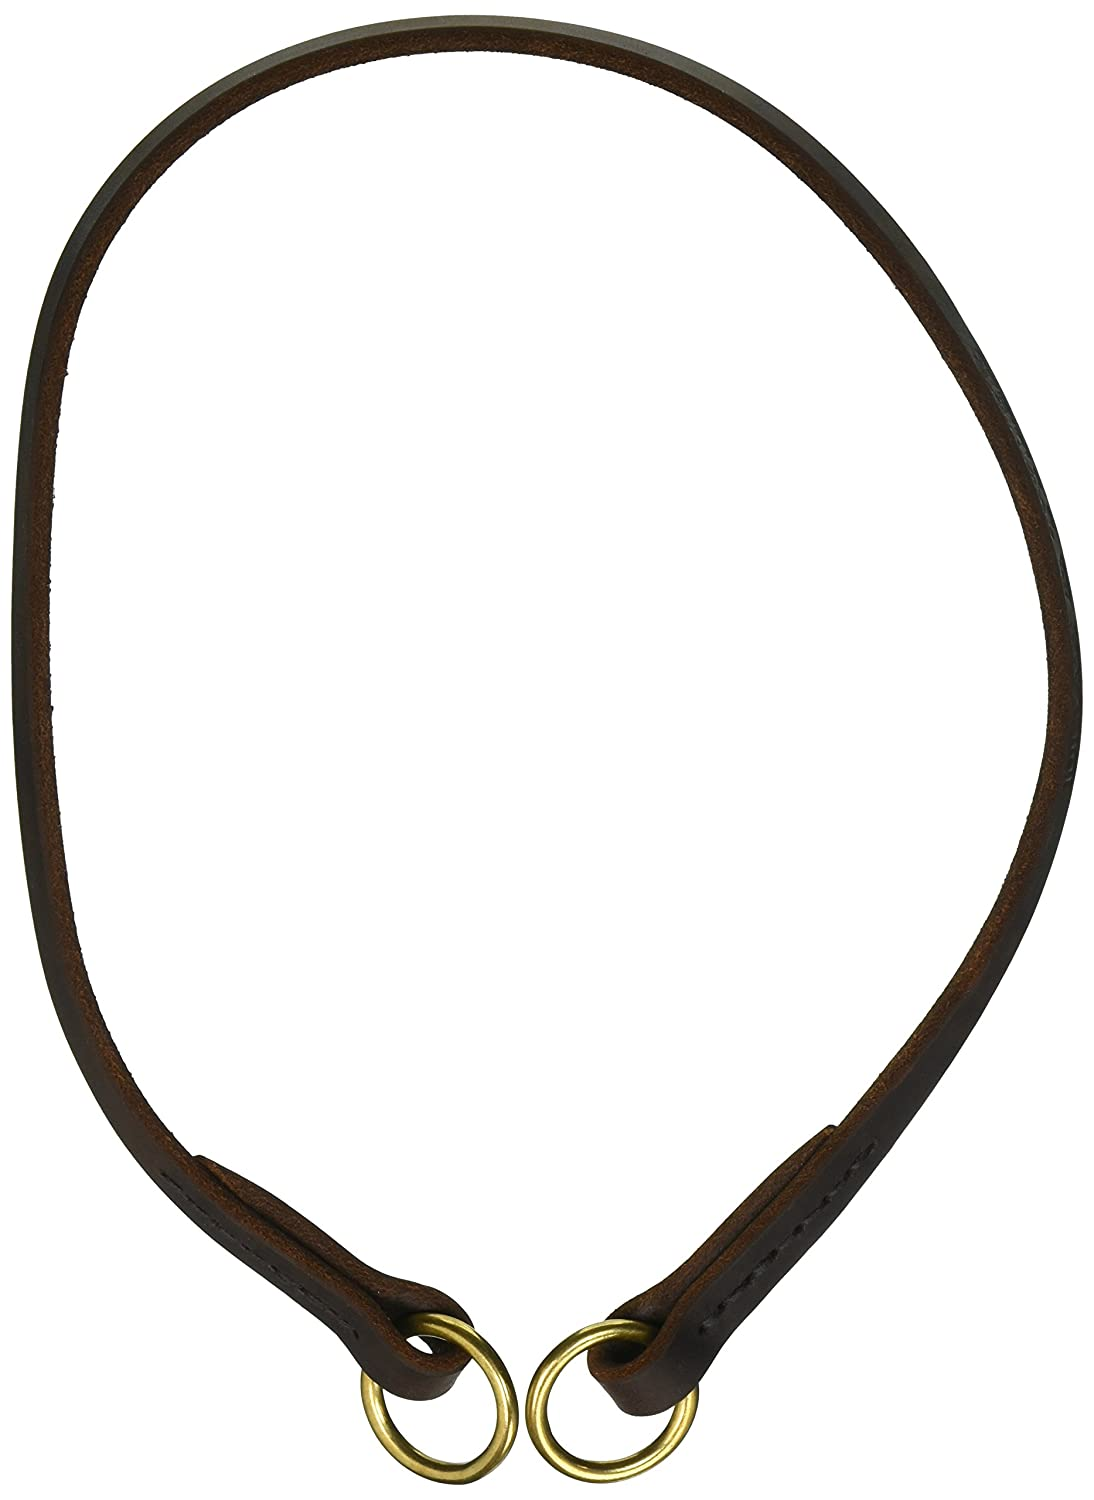 Dean and Tyler TRANQUILITY , Leather Dog Choke Collar with Solid Brass Hardware Brown Size 26-Inch by 1 2-Inch Fits Neck 24-Inch to 26-Inch